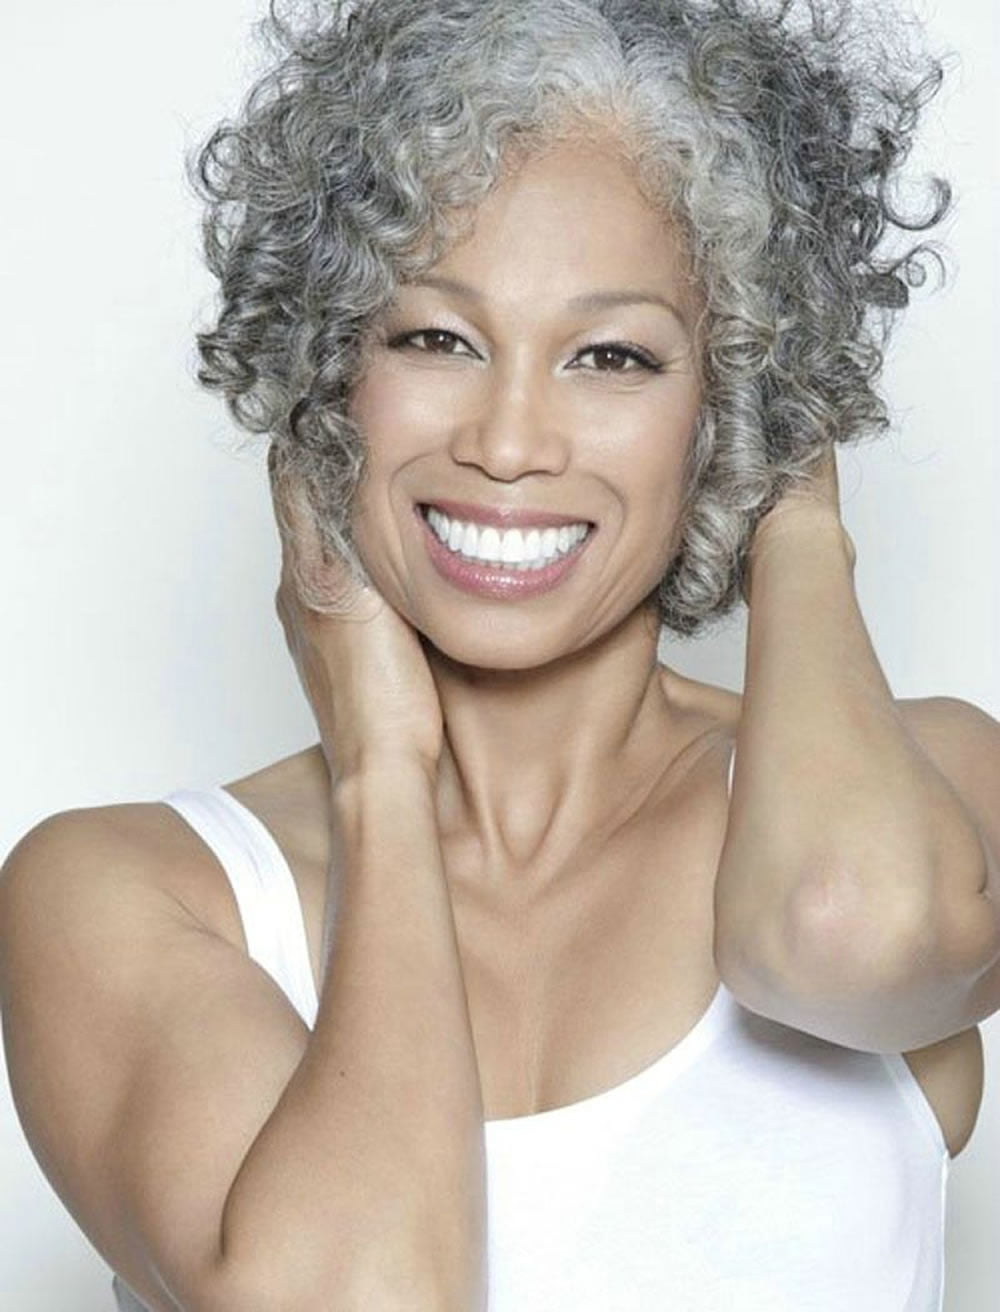 Curly Short Hairstyles for Older Women Over 50 - Best